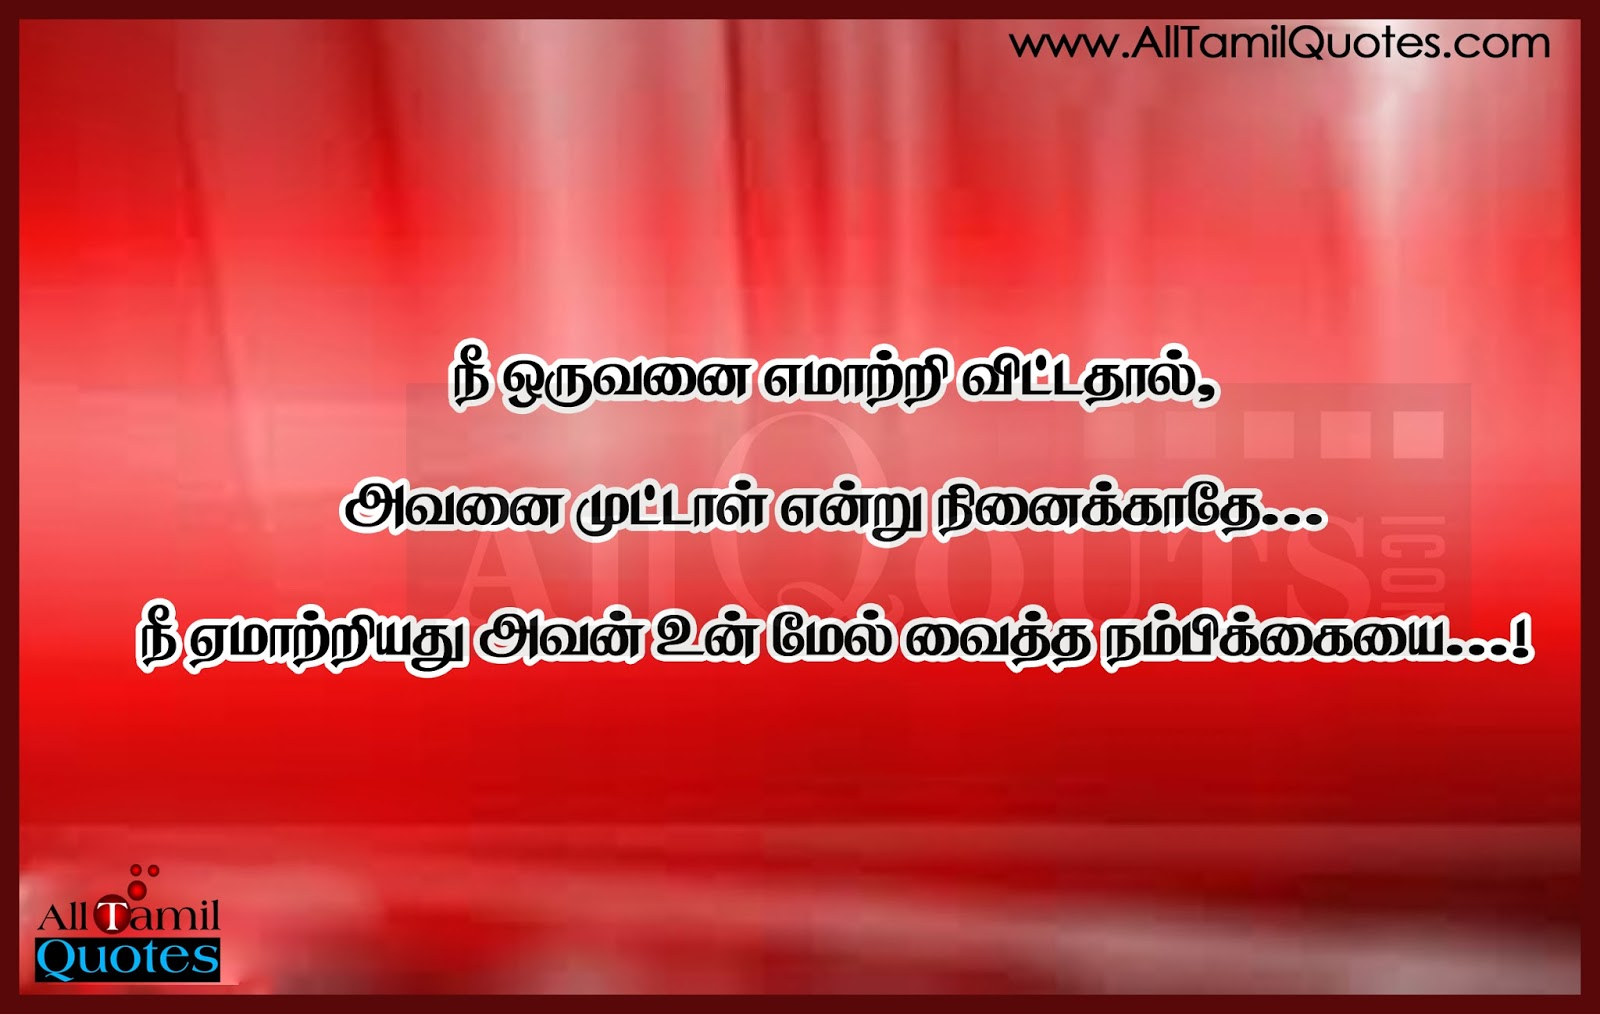 Life Tamil Quotes And Thoughts